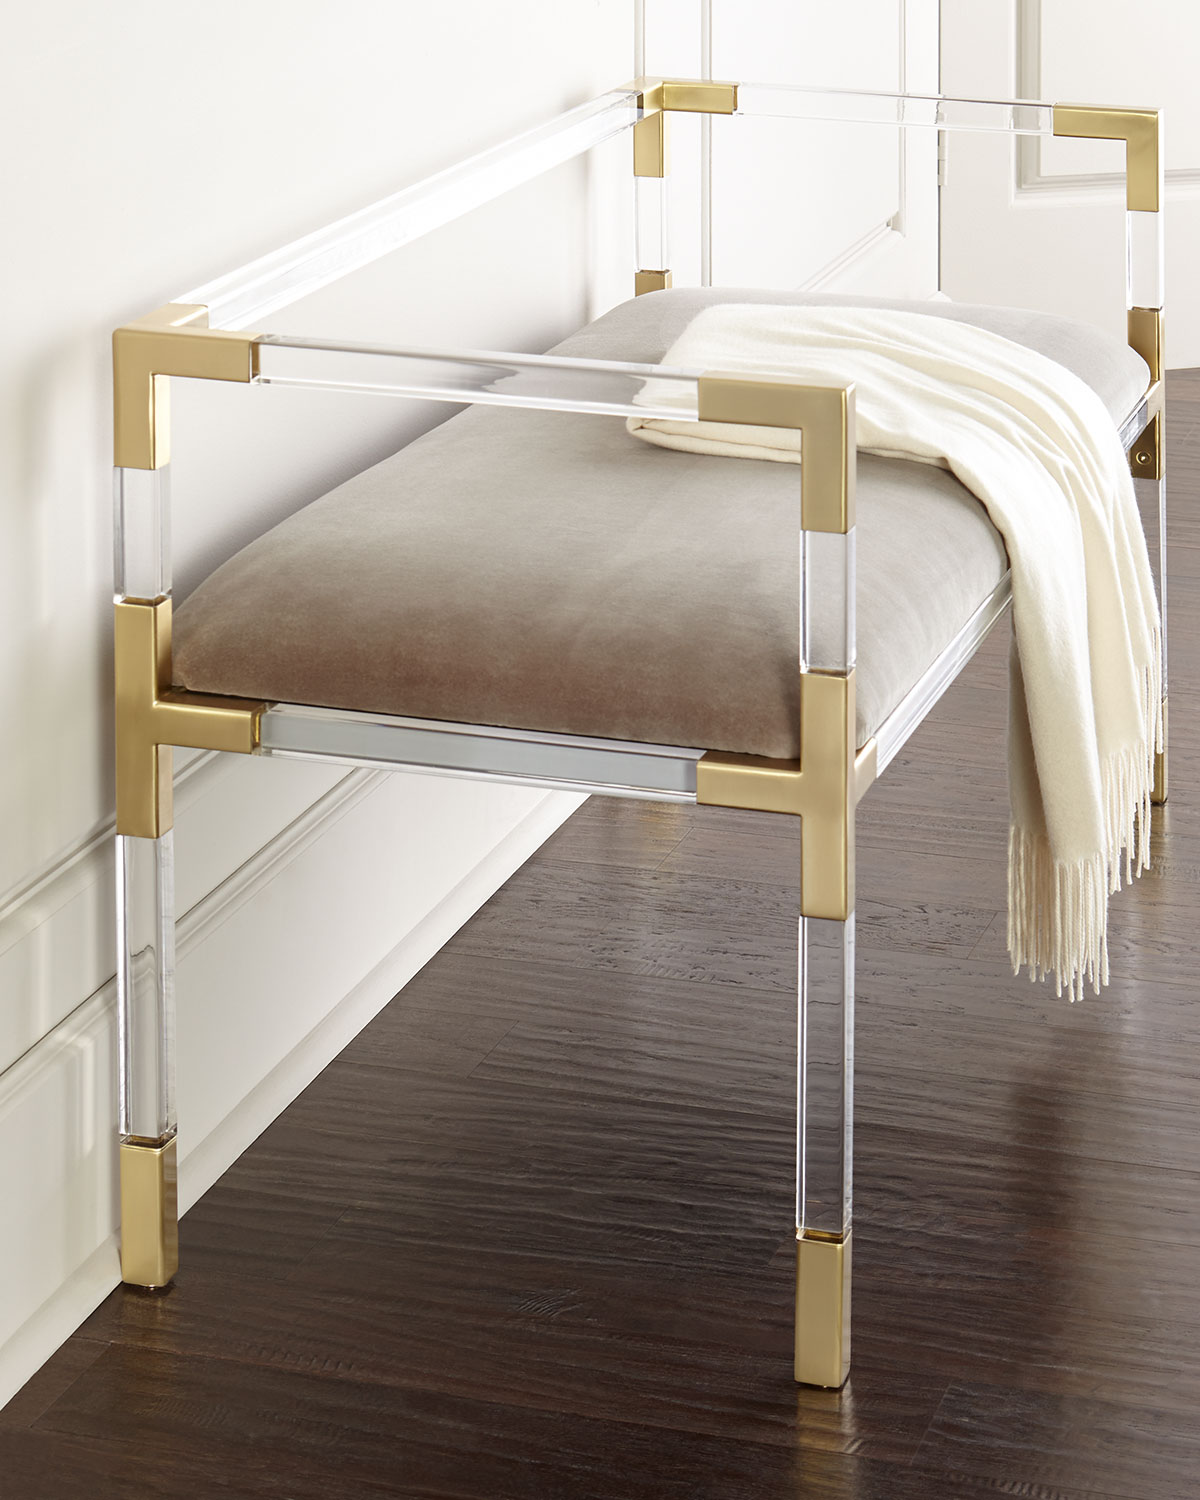 Buy Jonathan Adler Bedroom Furniture For Home Best Home Jonathan